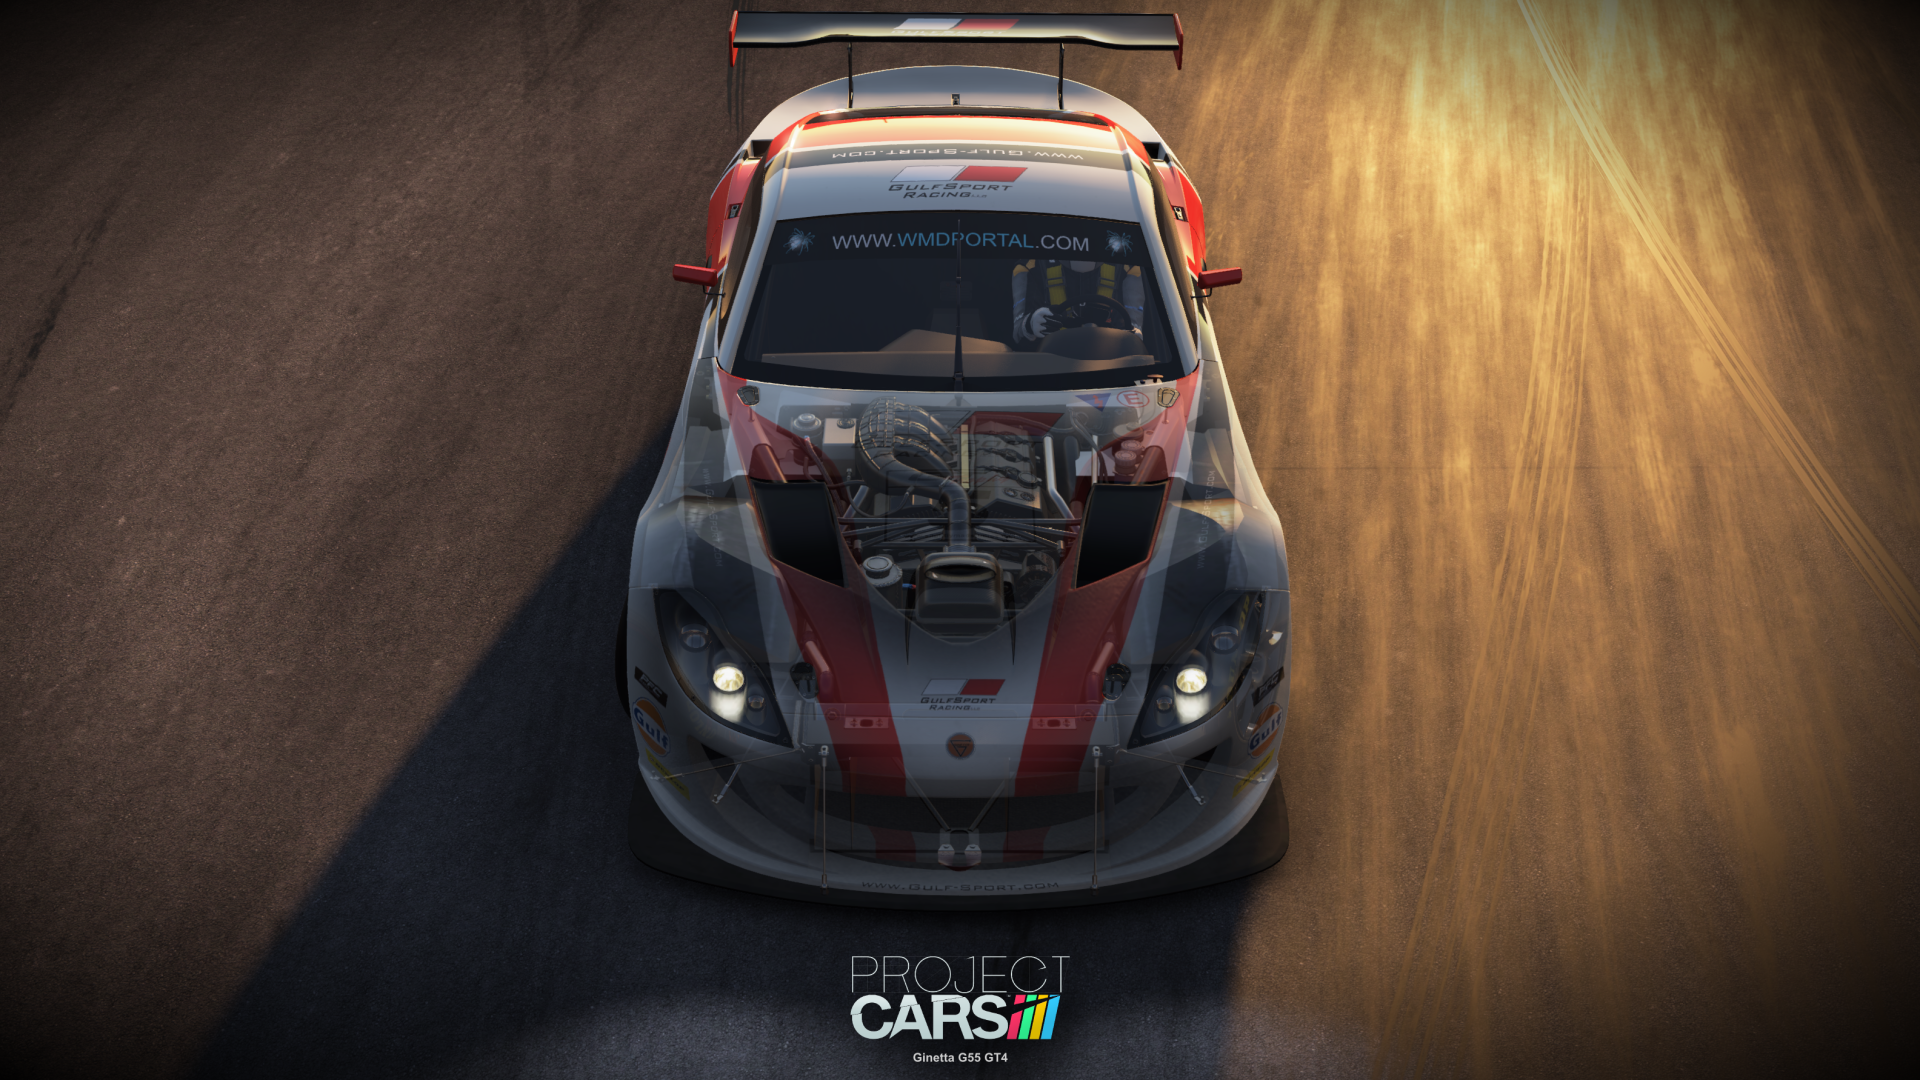 Download Project Cars 2 For IOS - Download iOS Games for